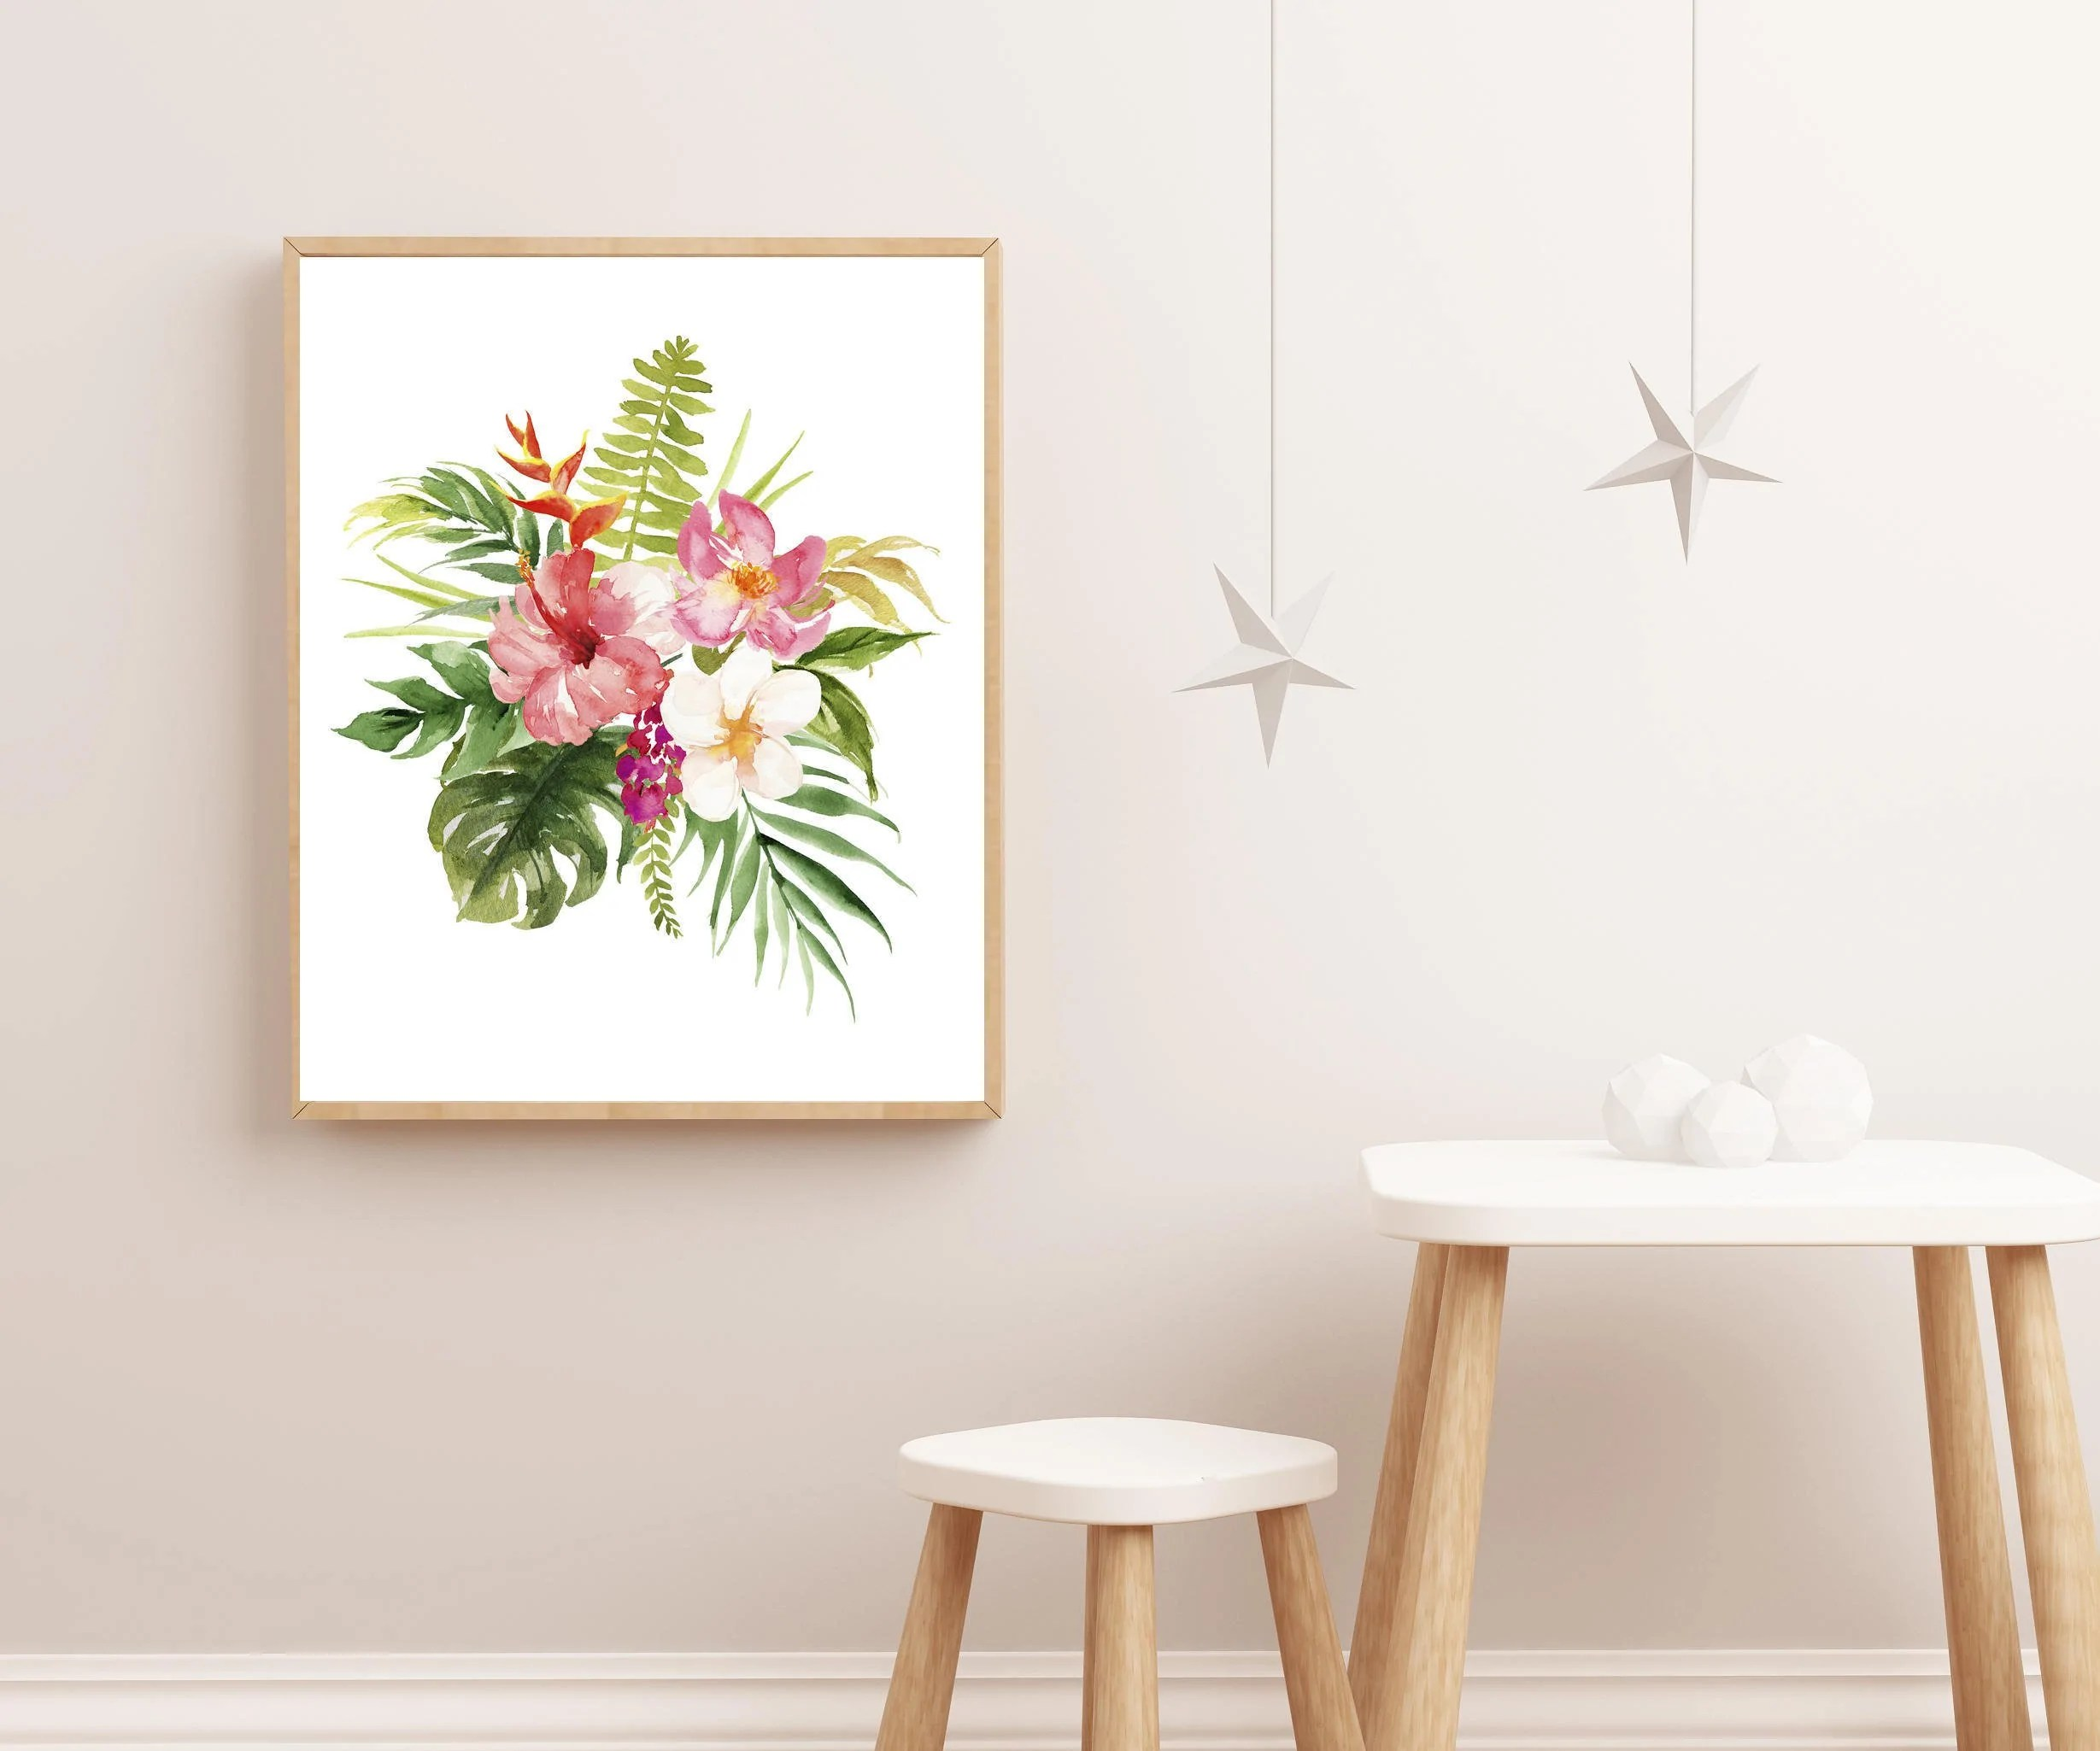 Nursery Prints Girl Baby Girl Nursery Art Girl Nursery Art Tropical Nursery Print Watercolor Flower Prints Floral Nursery Art Baby Girl Print Pink Nursery